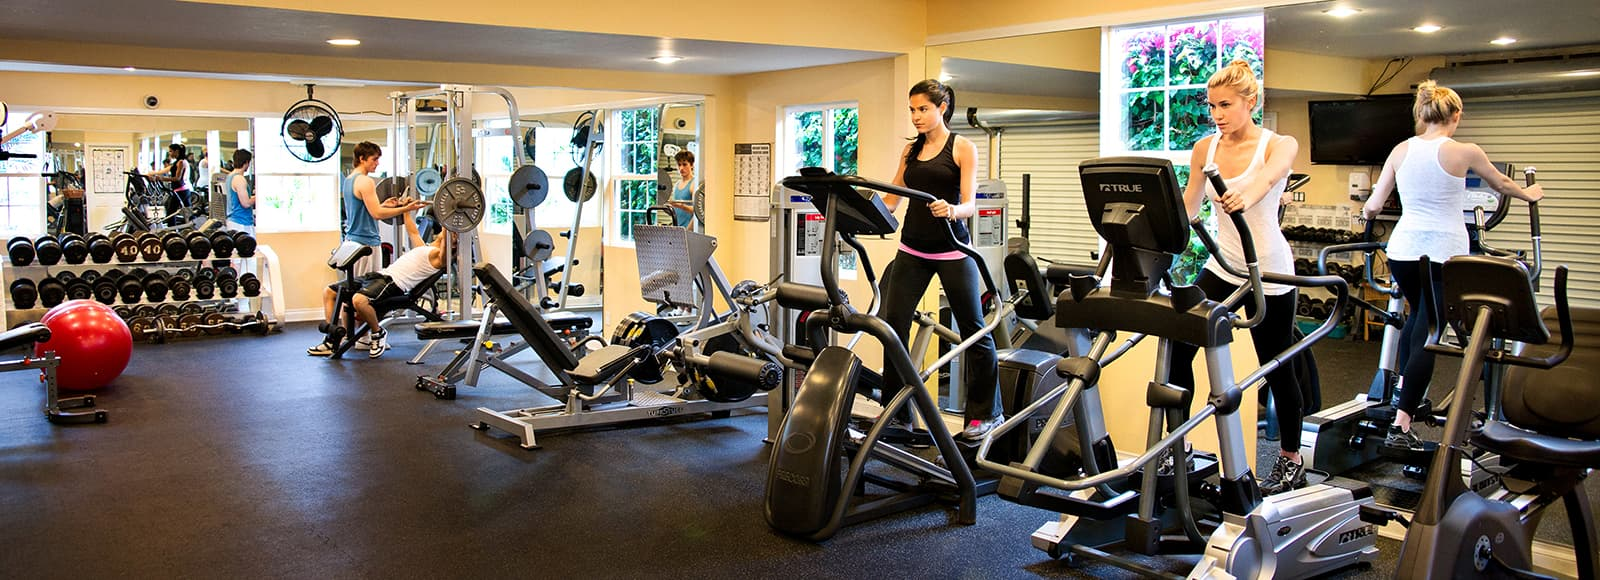 Personal Training at Passages Ventura